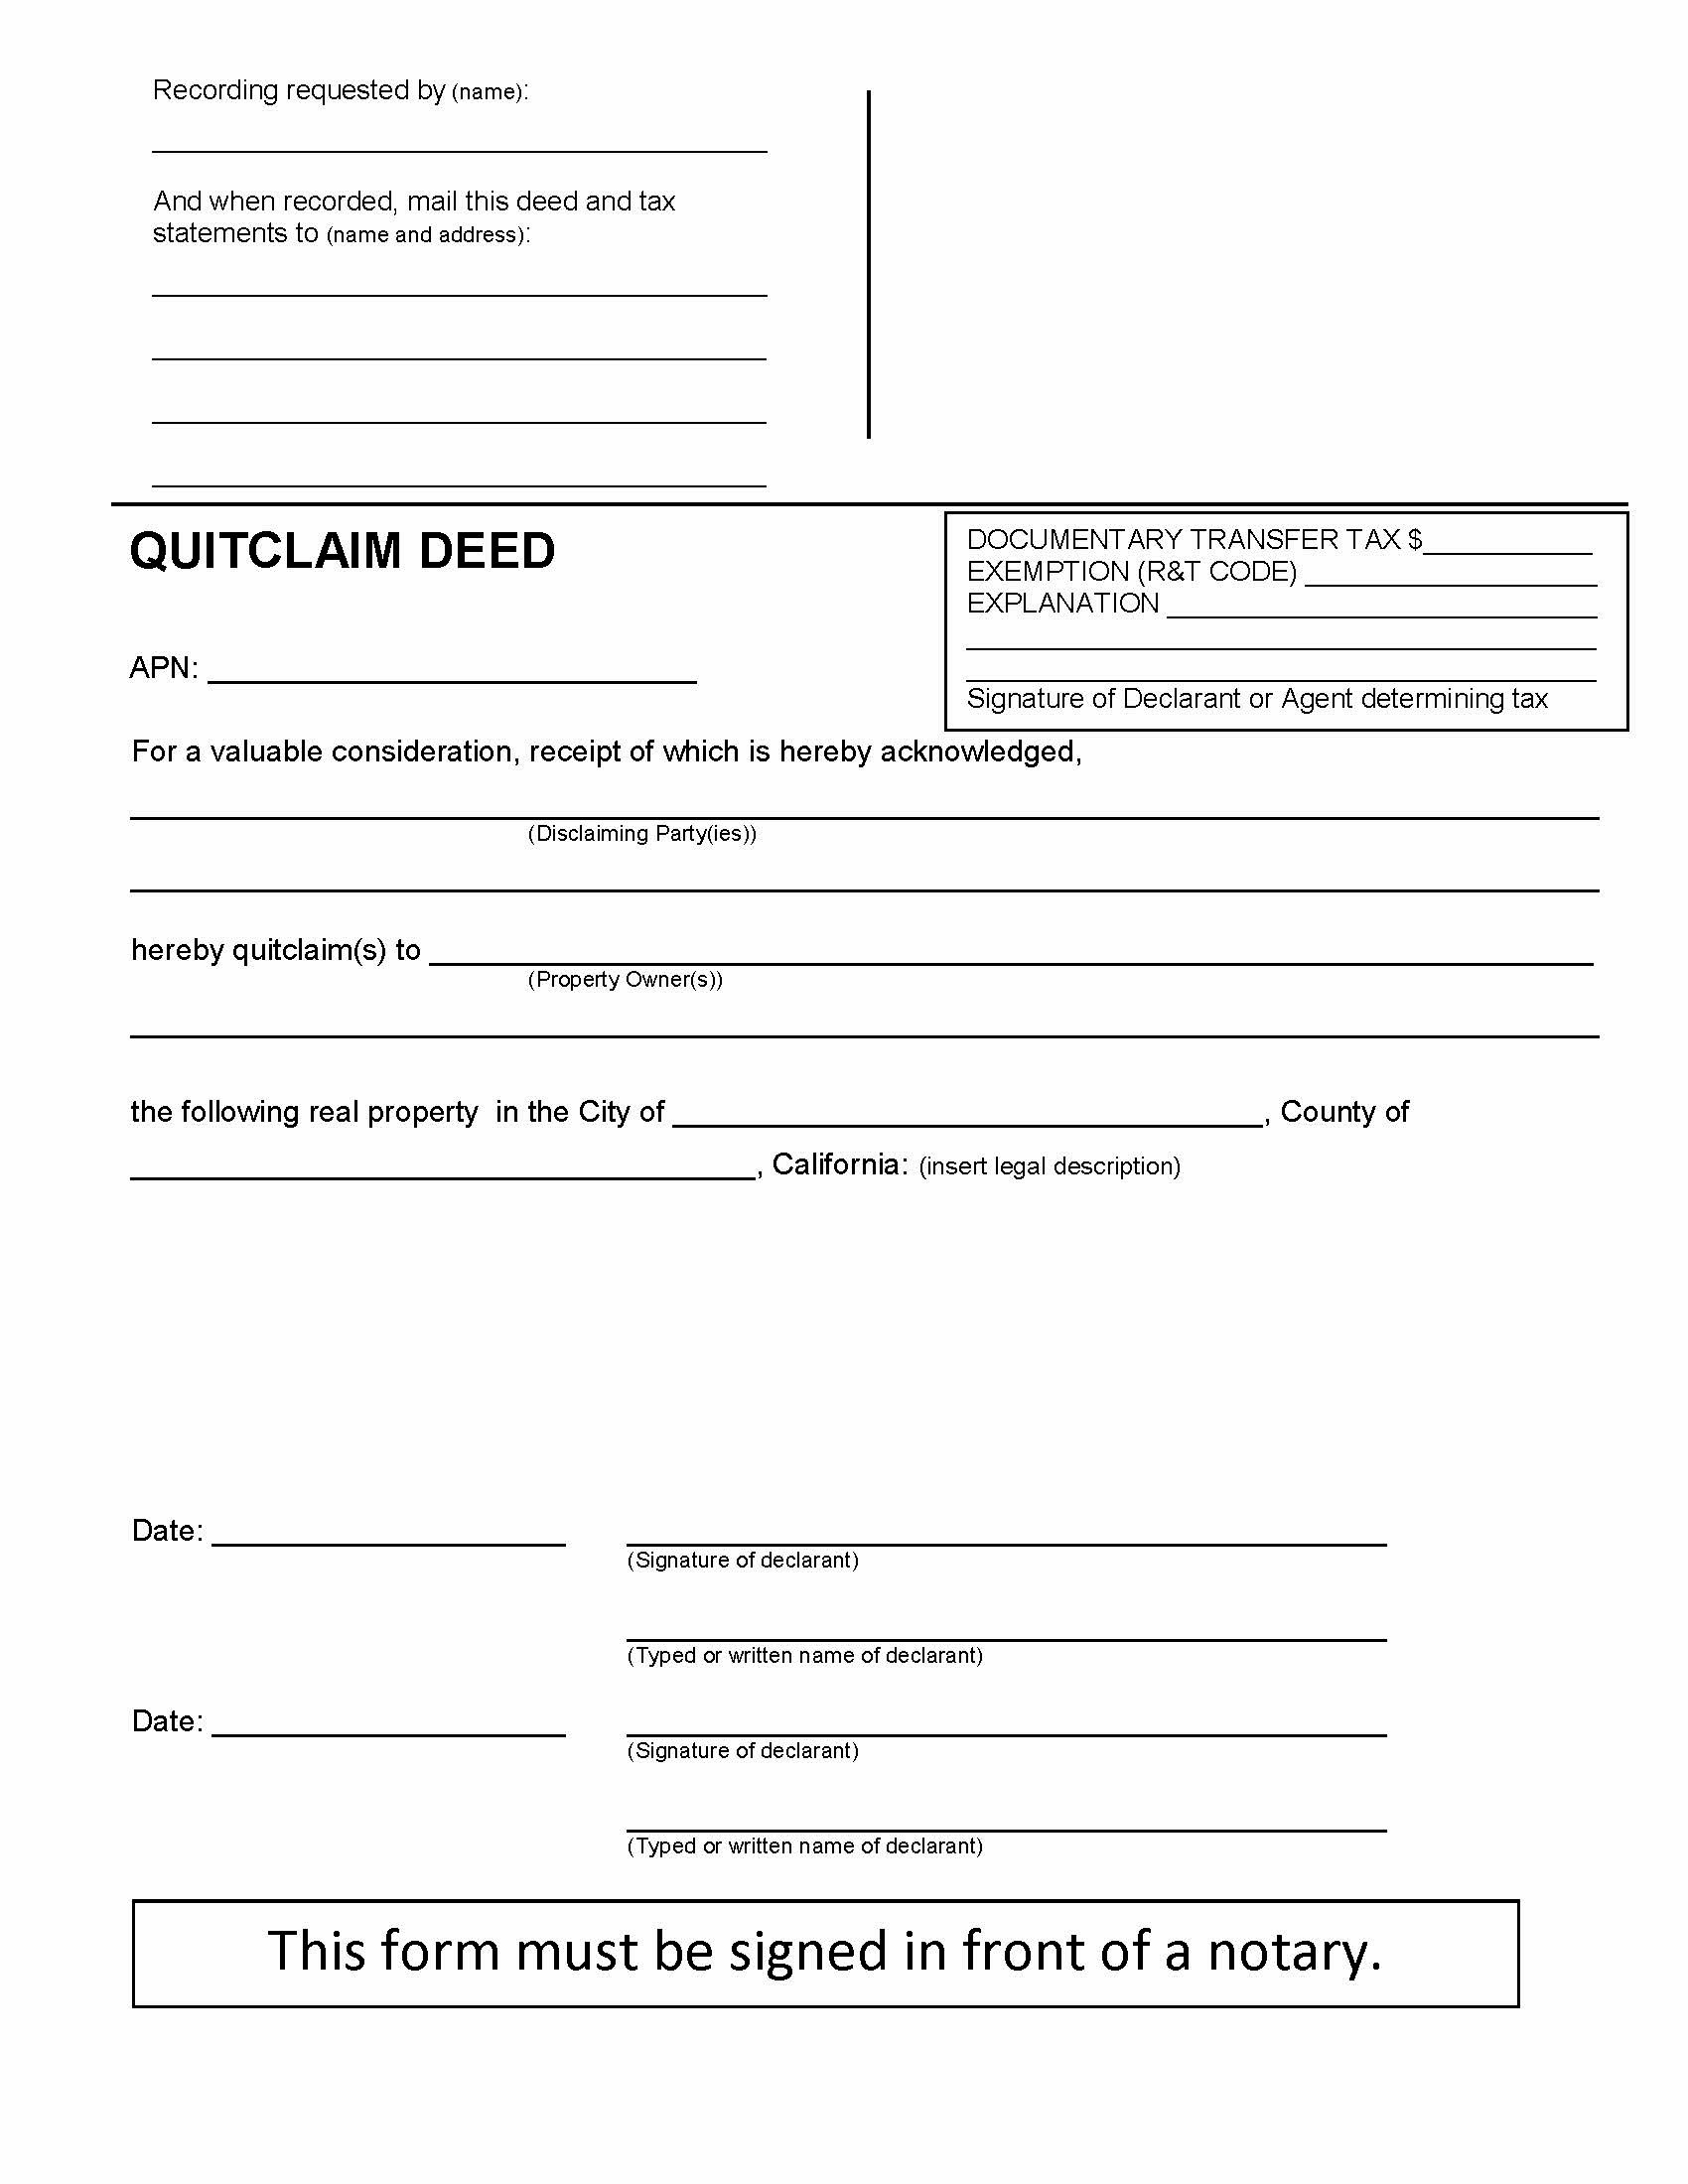 Quit Claim Deed Form Riverside County California Awesome Quit Claim Deed Form California Page 1 Capable Though ? Ndoilrigs